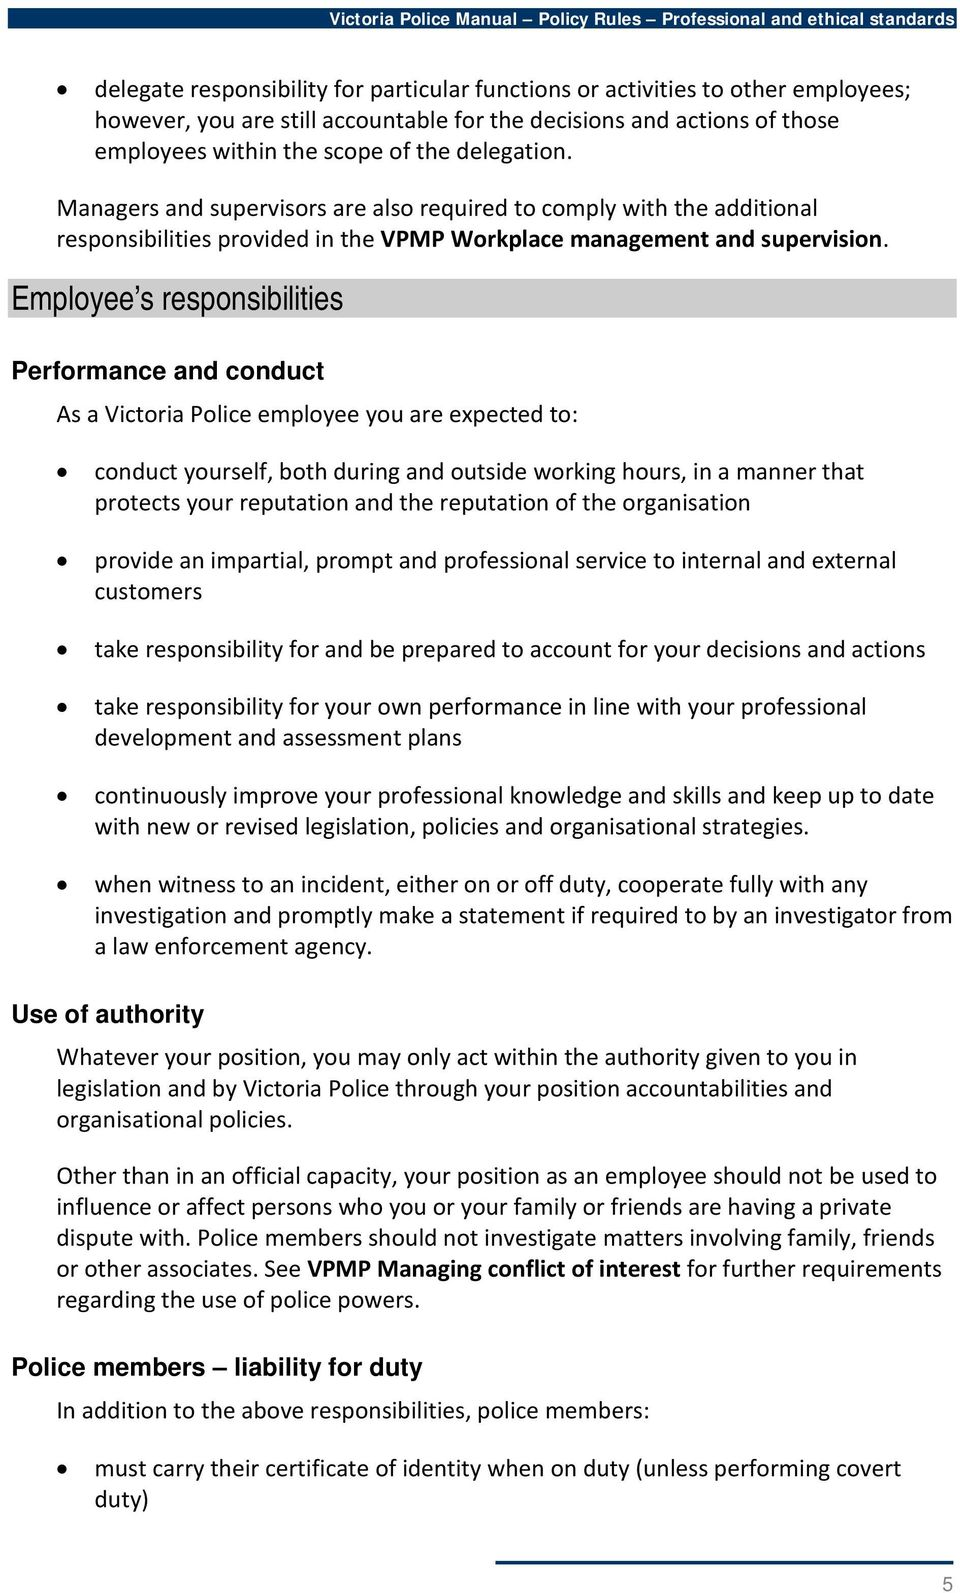 Employee s responsibilities Performance and conduct As a Victoria Police employee you are expected to: conduct yourself, both during and outside working hours, in a manner that protects your